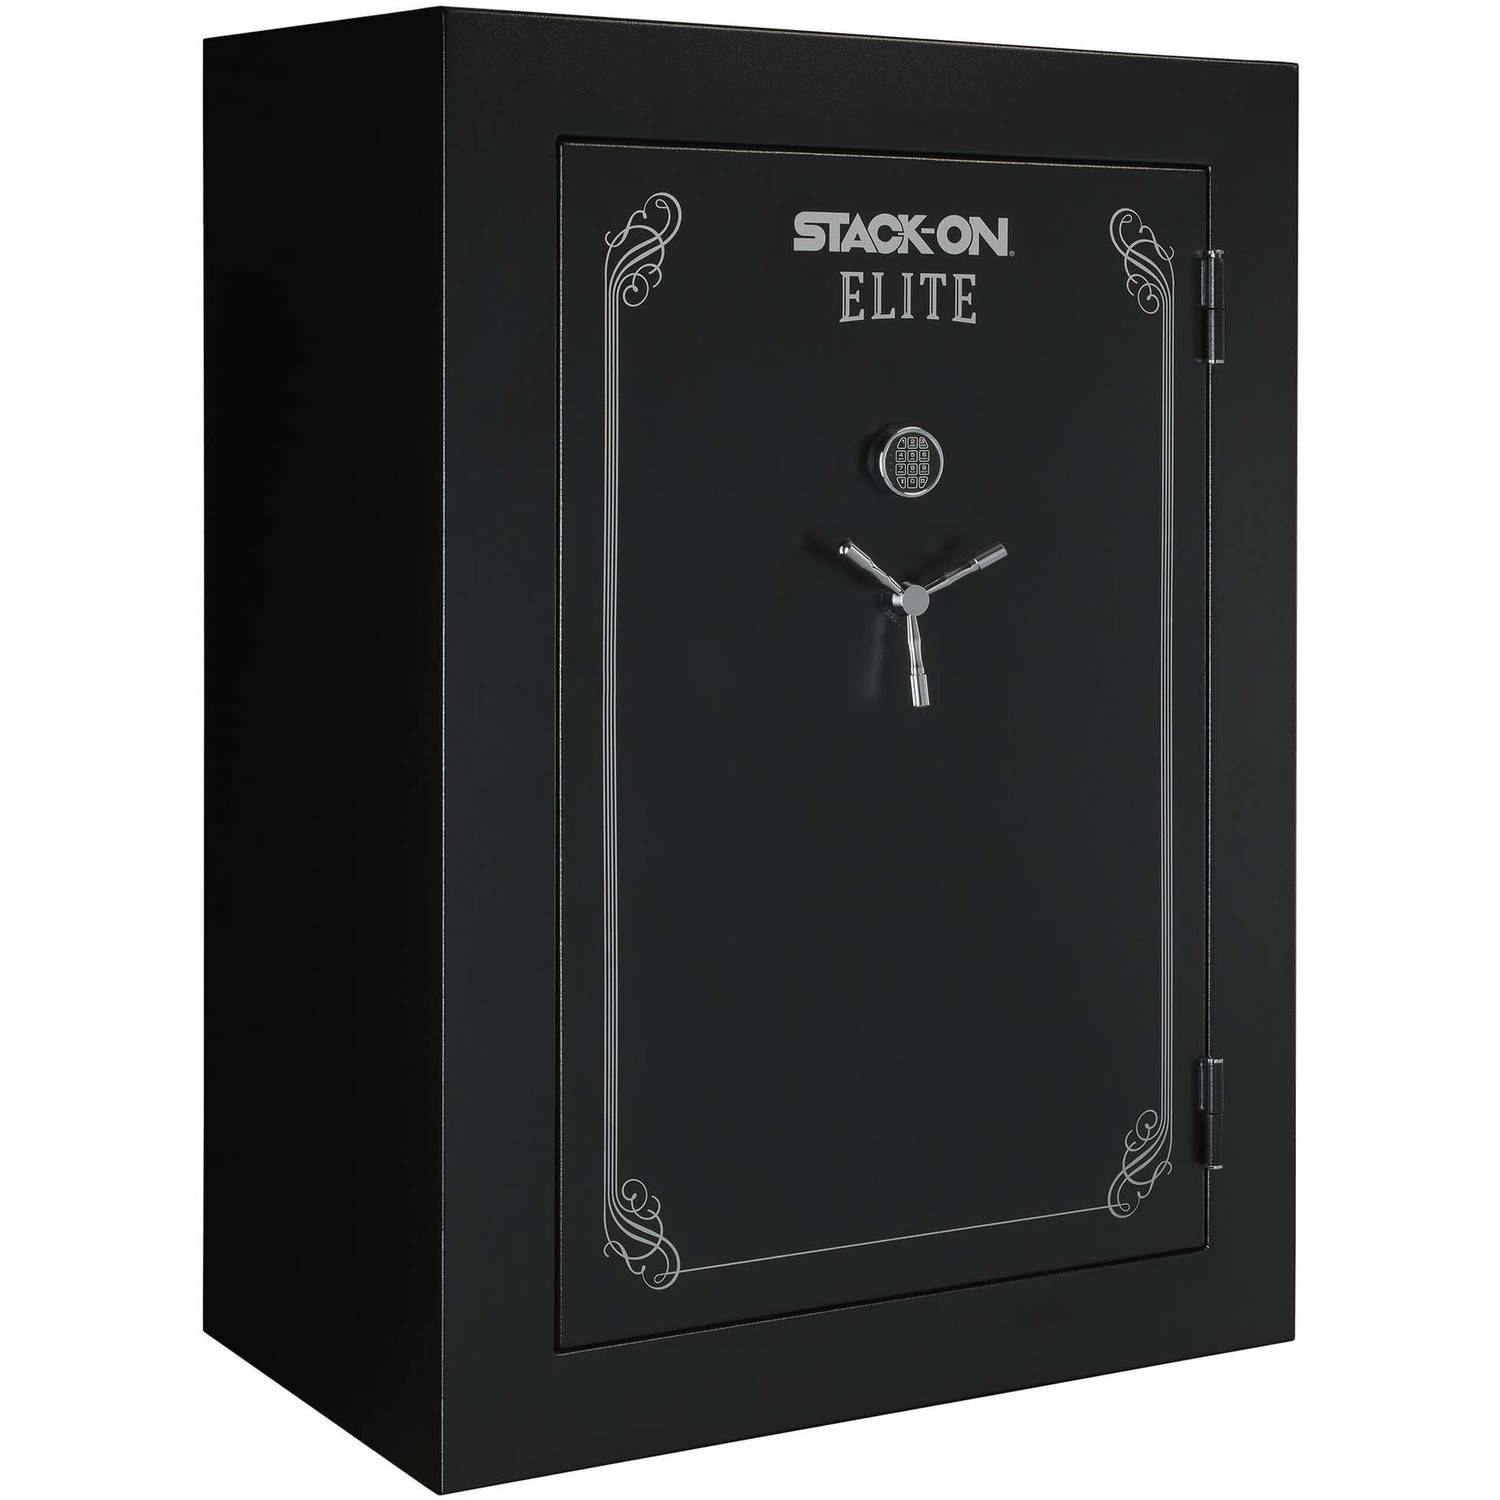 "Click here to buy Stack-On 90-Gun Elite Safe with Electronic Lock and Door Storage, 72"" Tall by Generic."